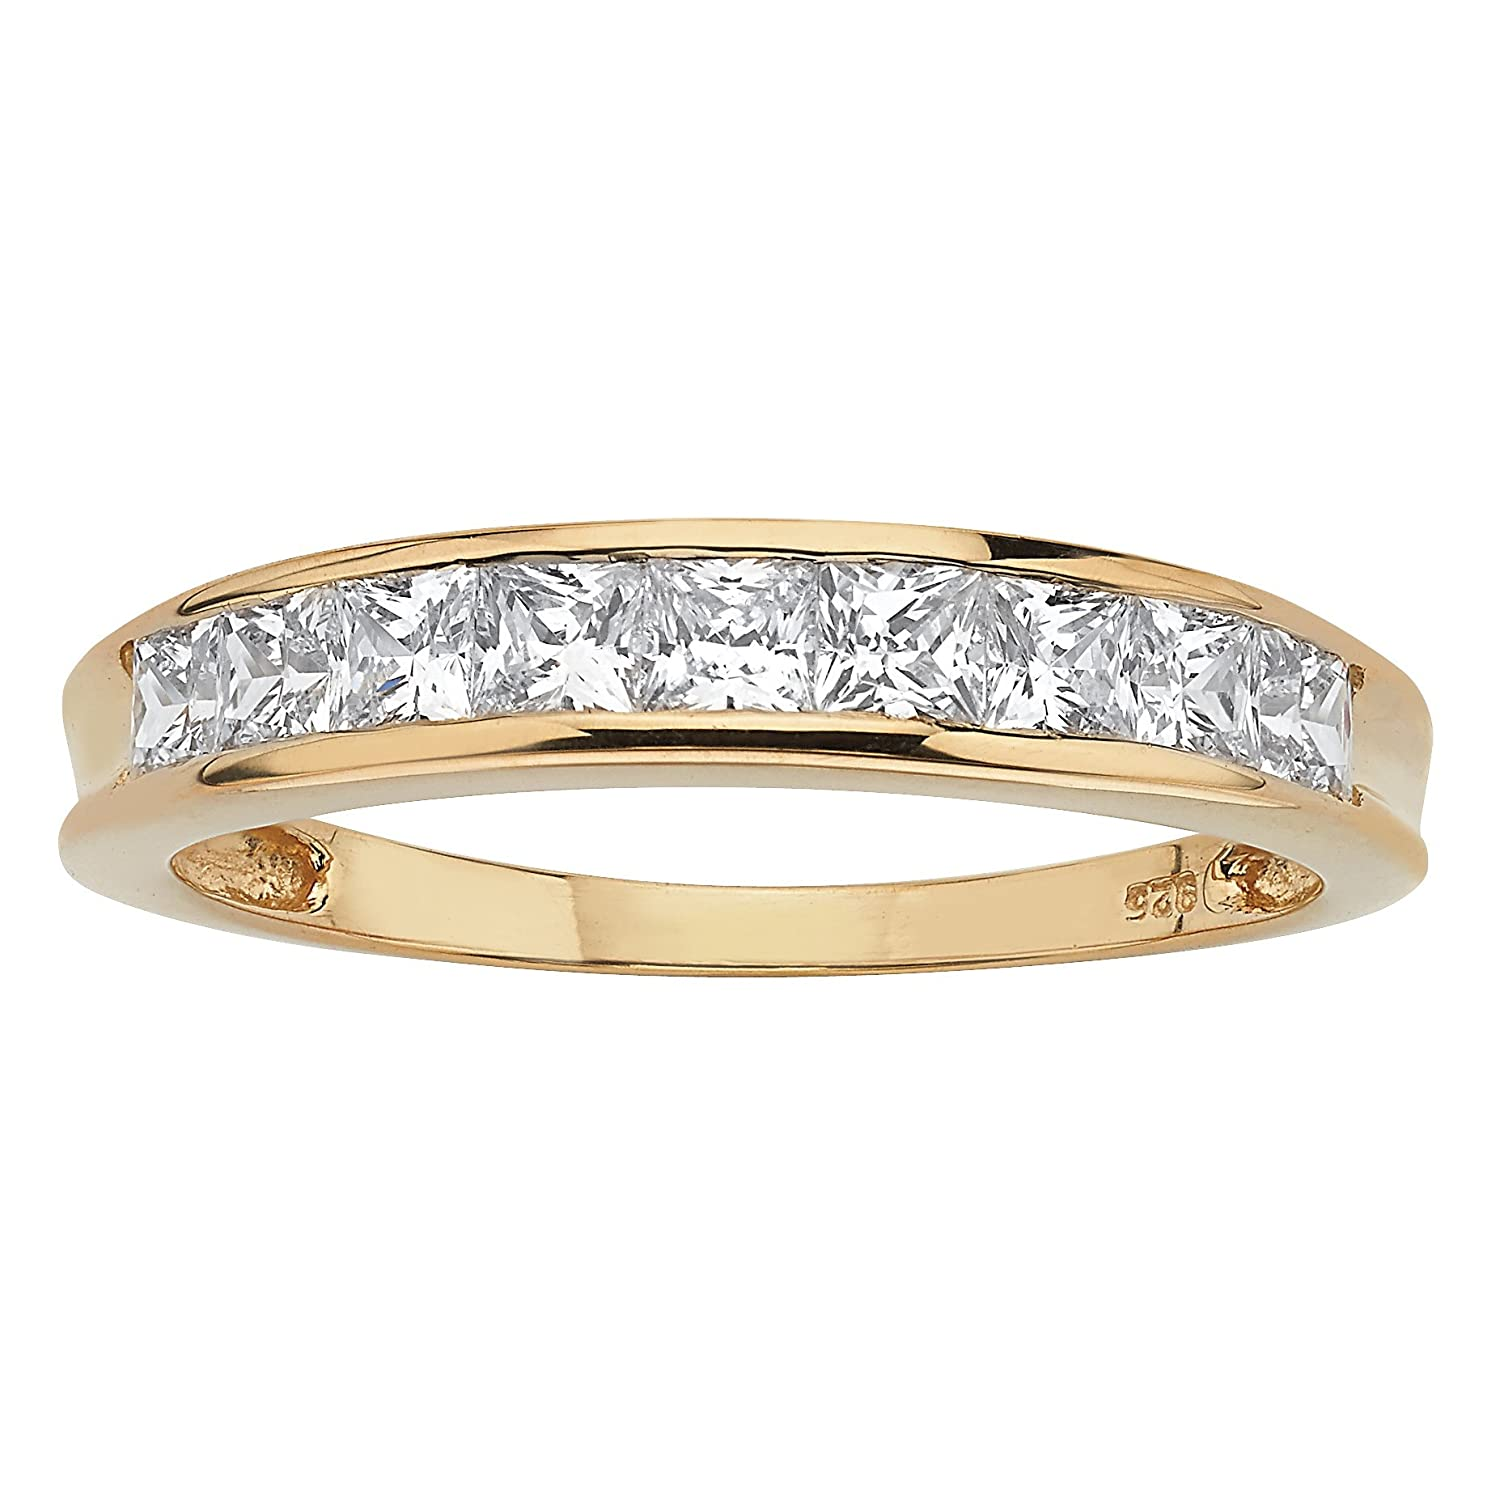 Round White Cubic Zirconia 18k Gold over .925 Sterling Silver Channel Anniversary Ring